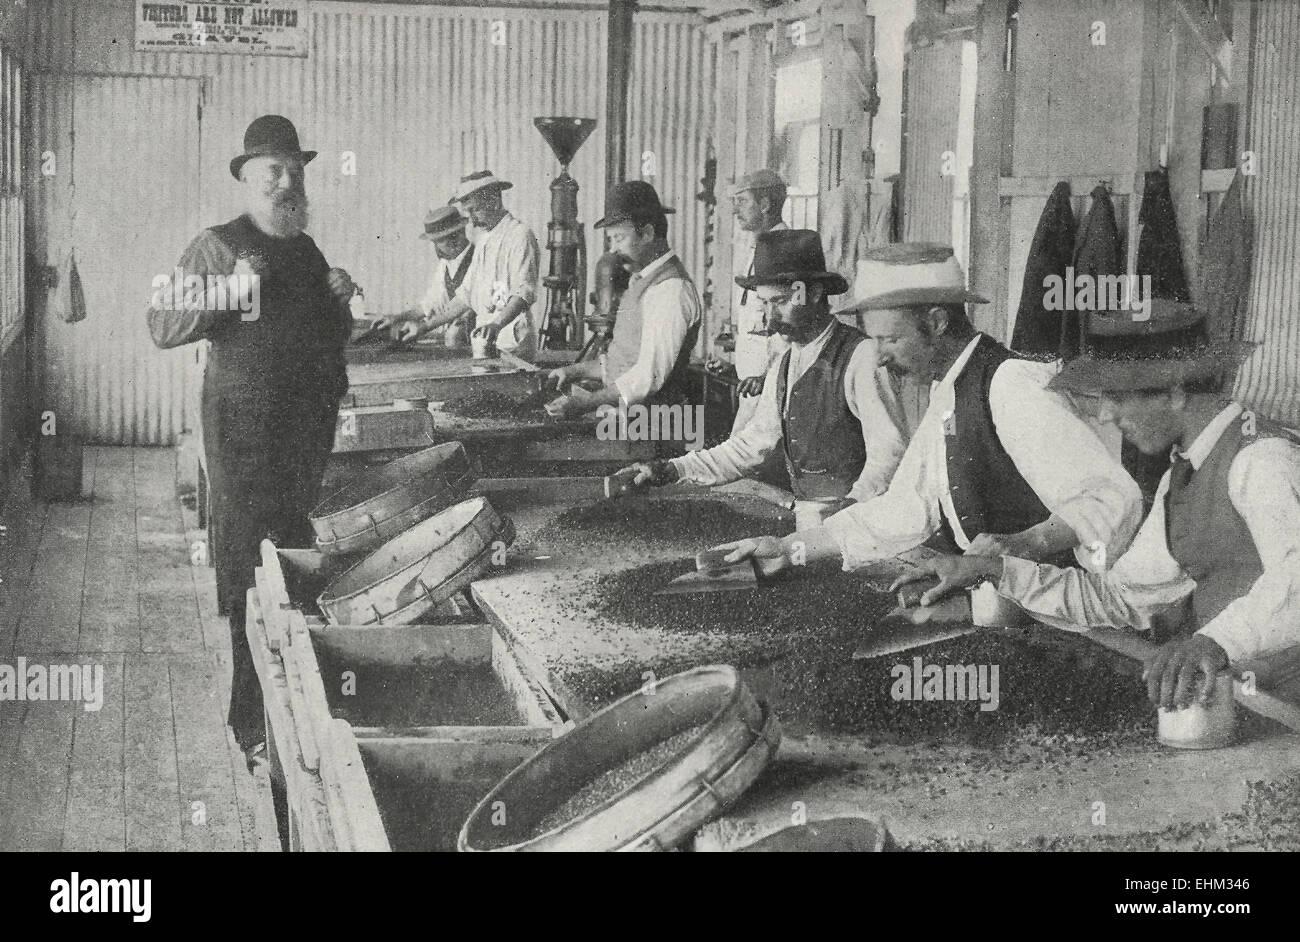 Sifting the Gravel for Diamonds - Kimberly Mines, South Africa, circa 1898 Stock Photo